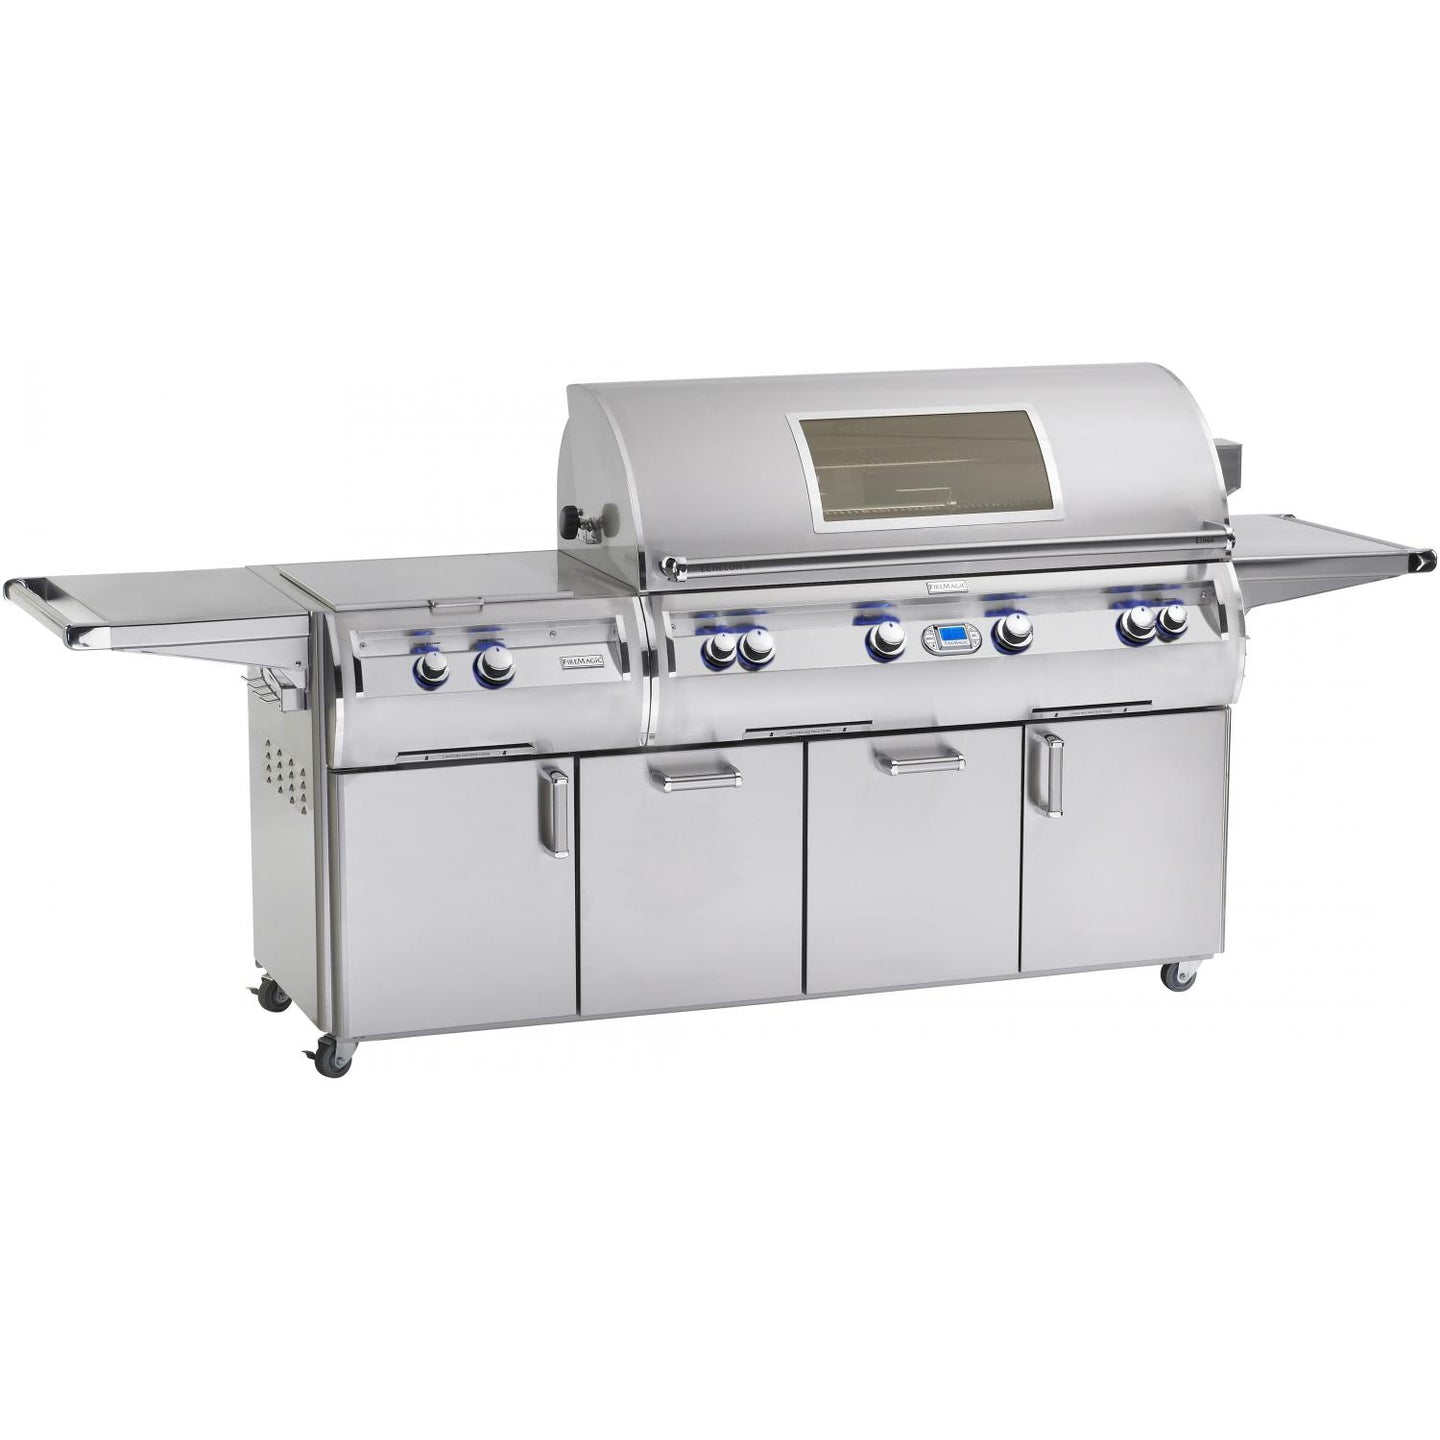 Fire Magic Echelon Diamond E1060s 48-Inch Freestanding Grill With Digital Thermometer And Power Burner